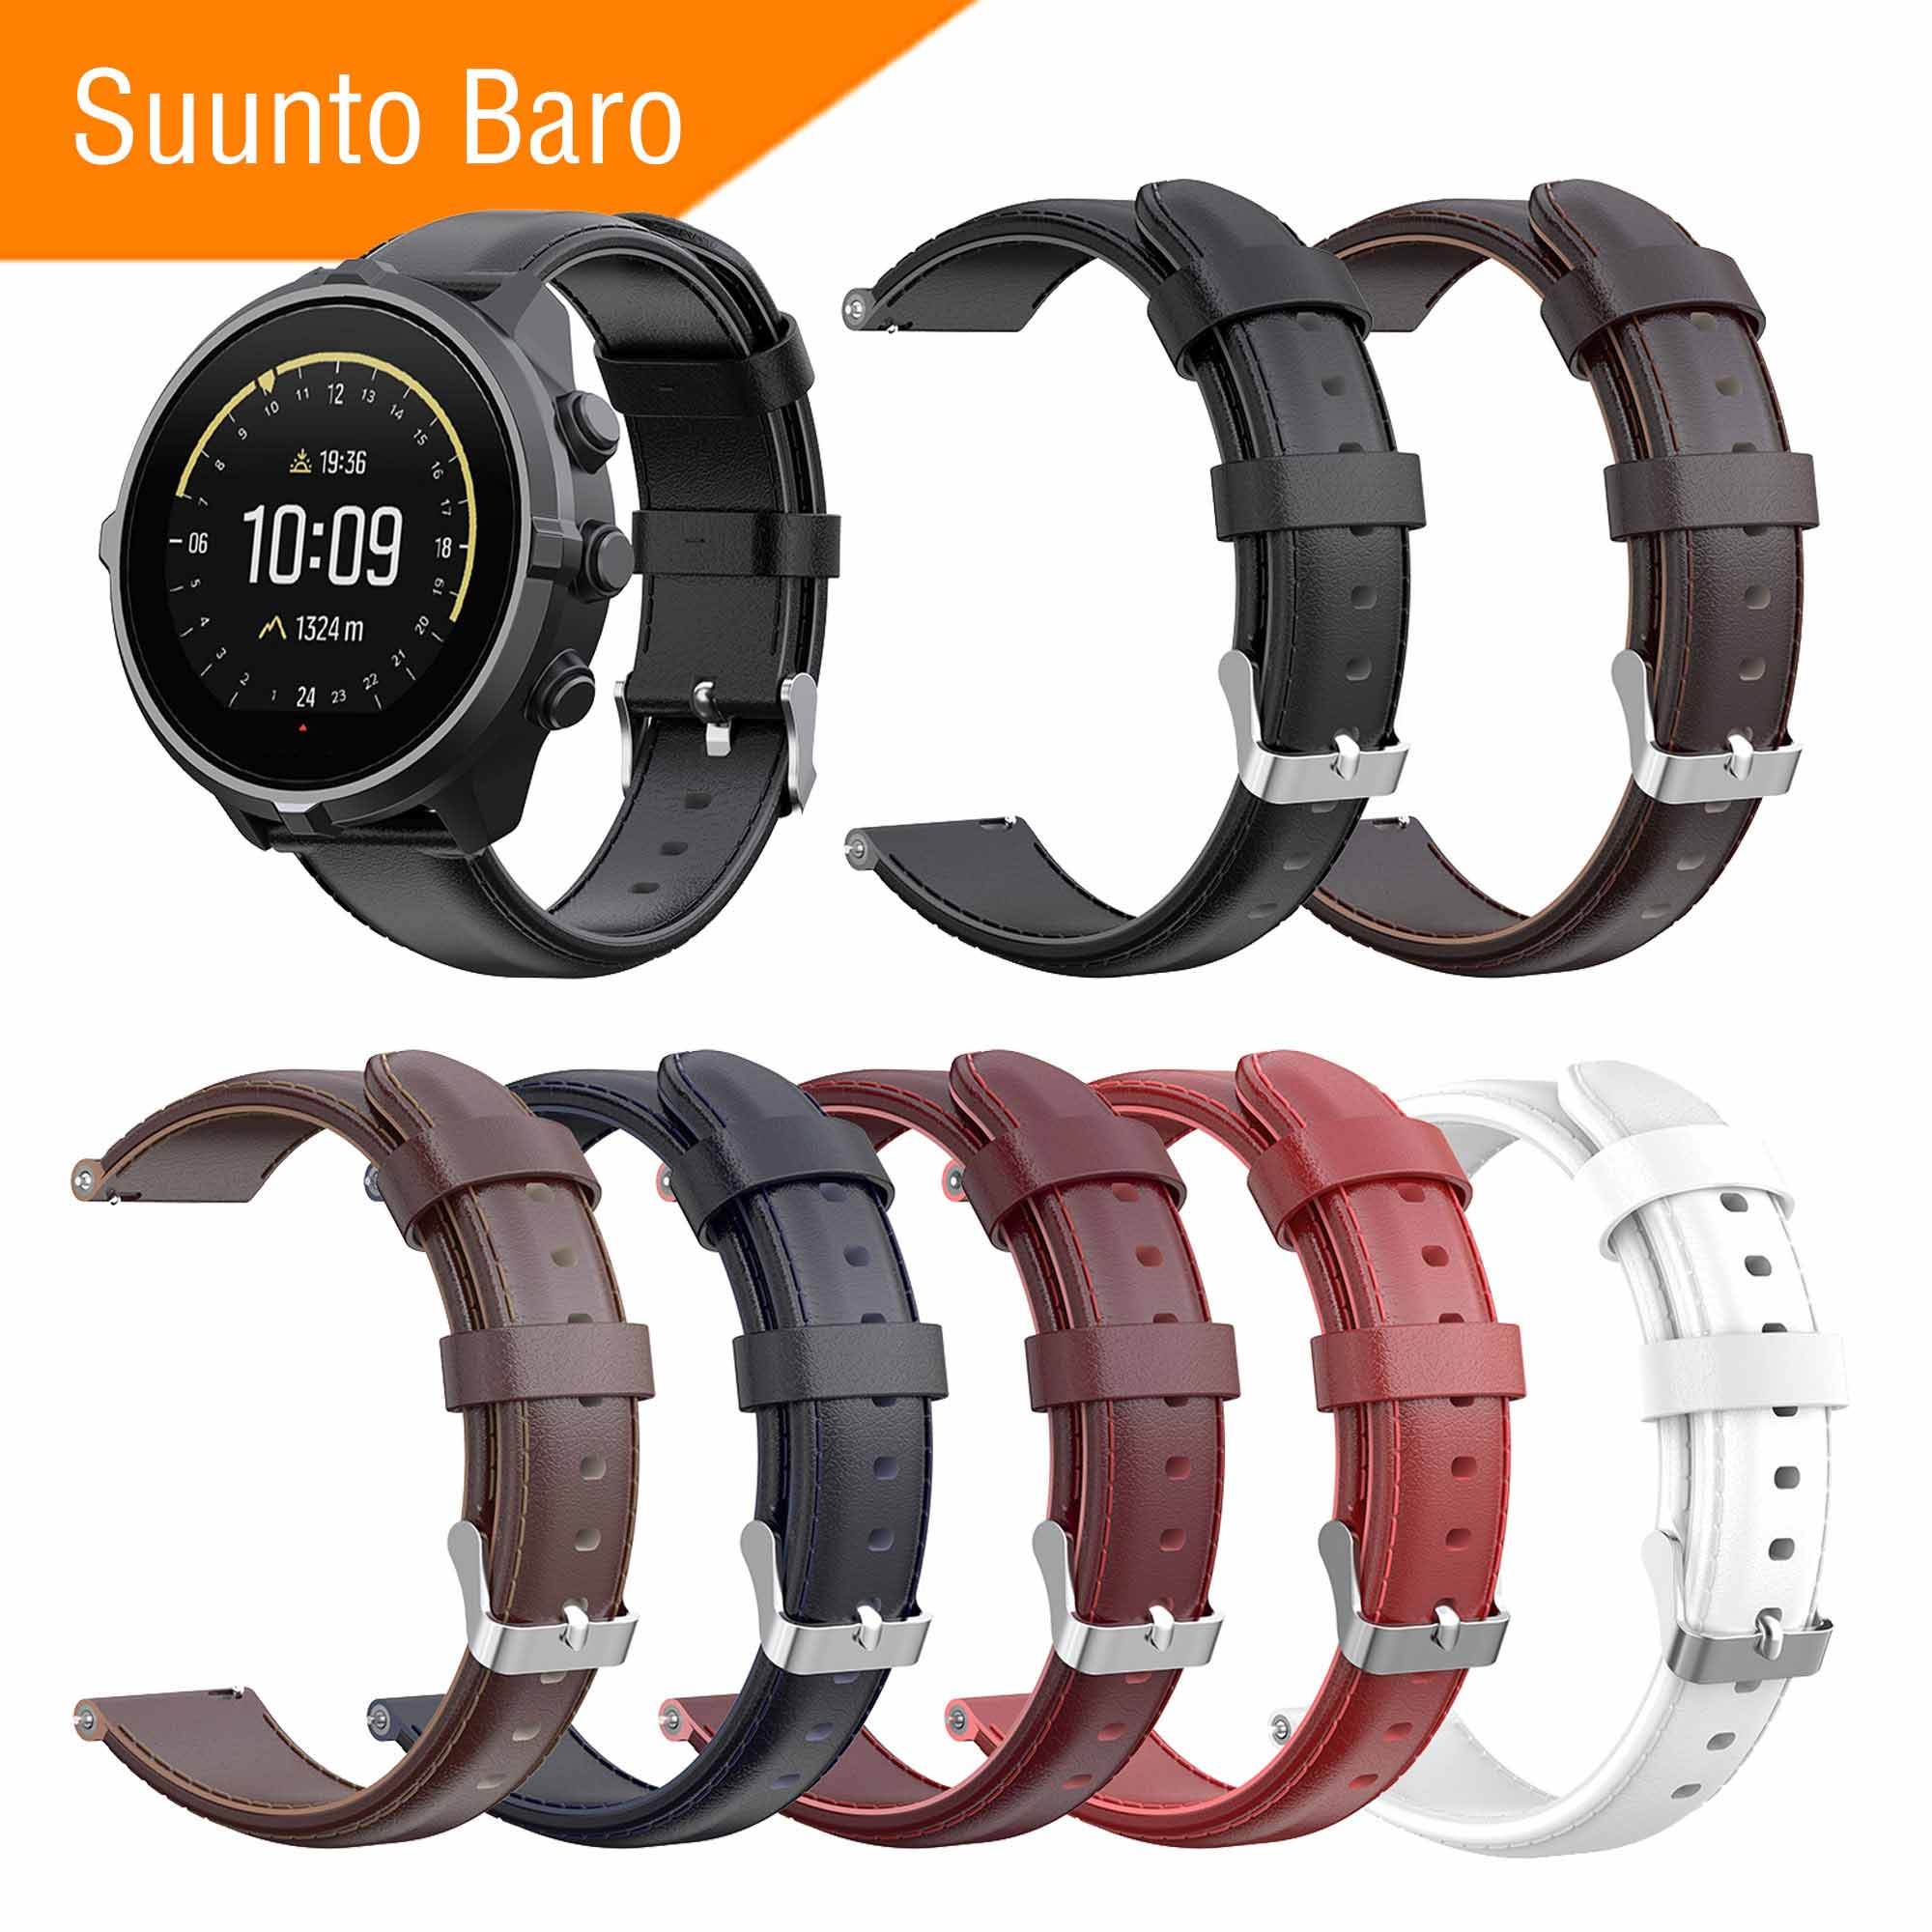 Mijobs Leather Strap for Sunnto Baro Smart Watch Genuine Watchband Replacement Wrist Accessories